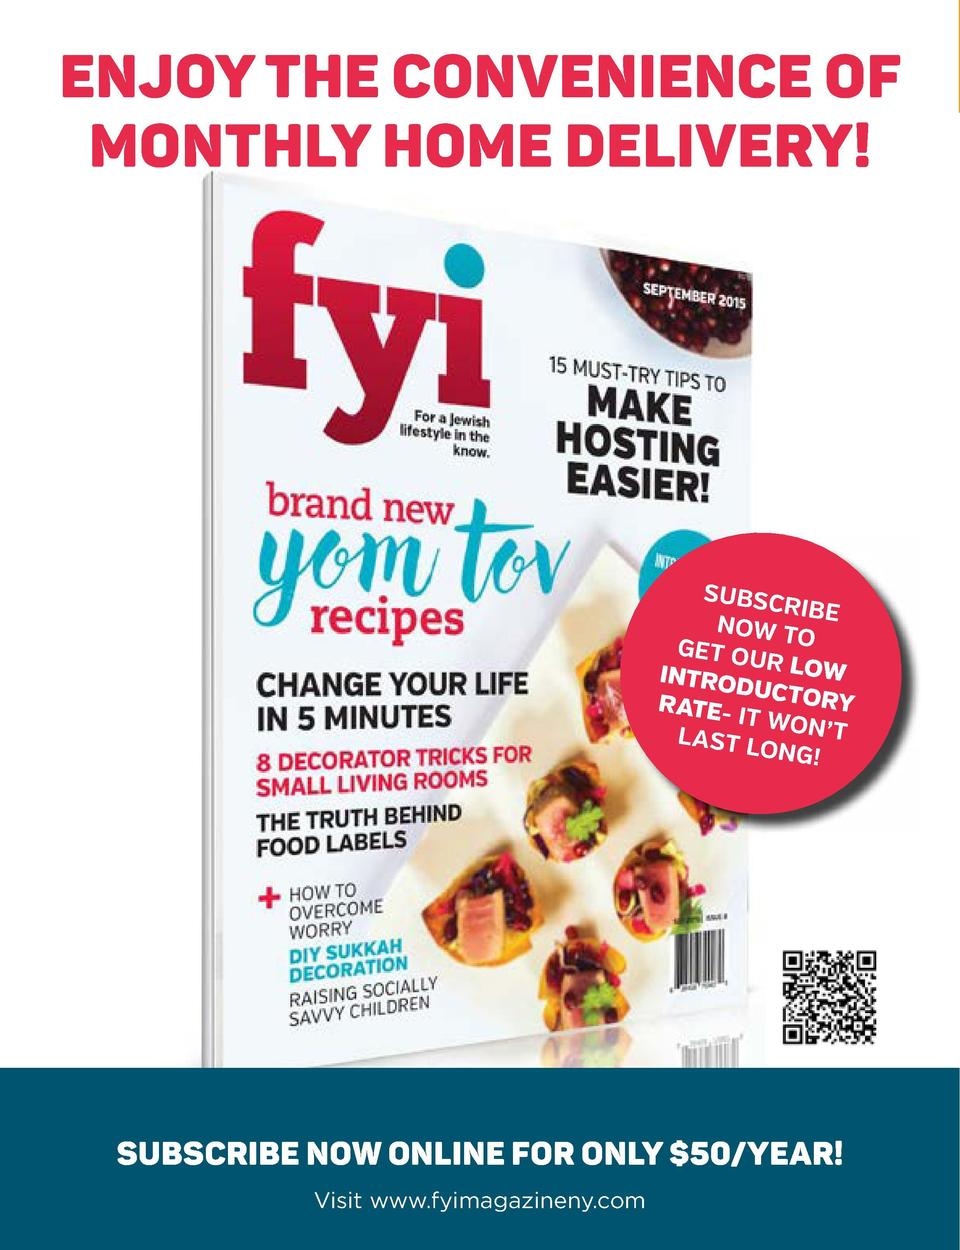 ENJOY THE CONVENIENCE OF MONTHLY HOME DELIVERY   ad  subscription page to the magazinewith the cover and low introductory ...